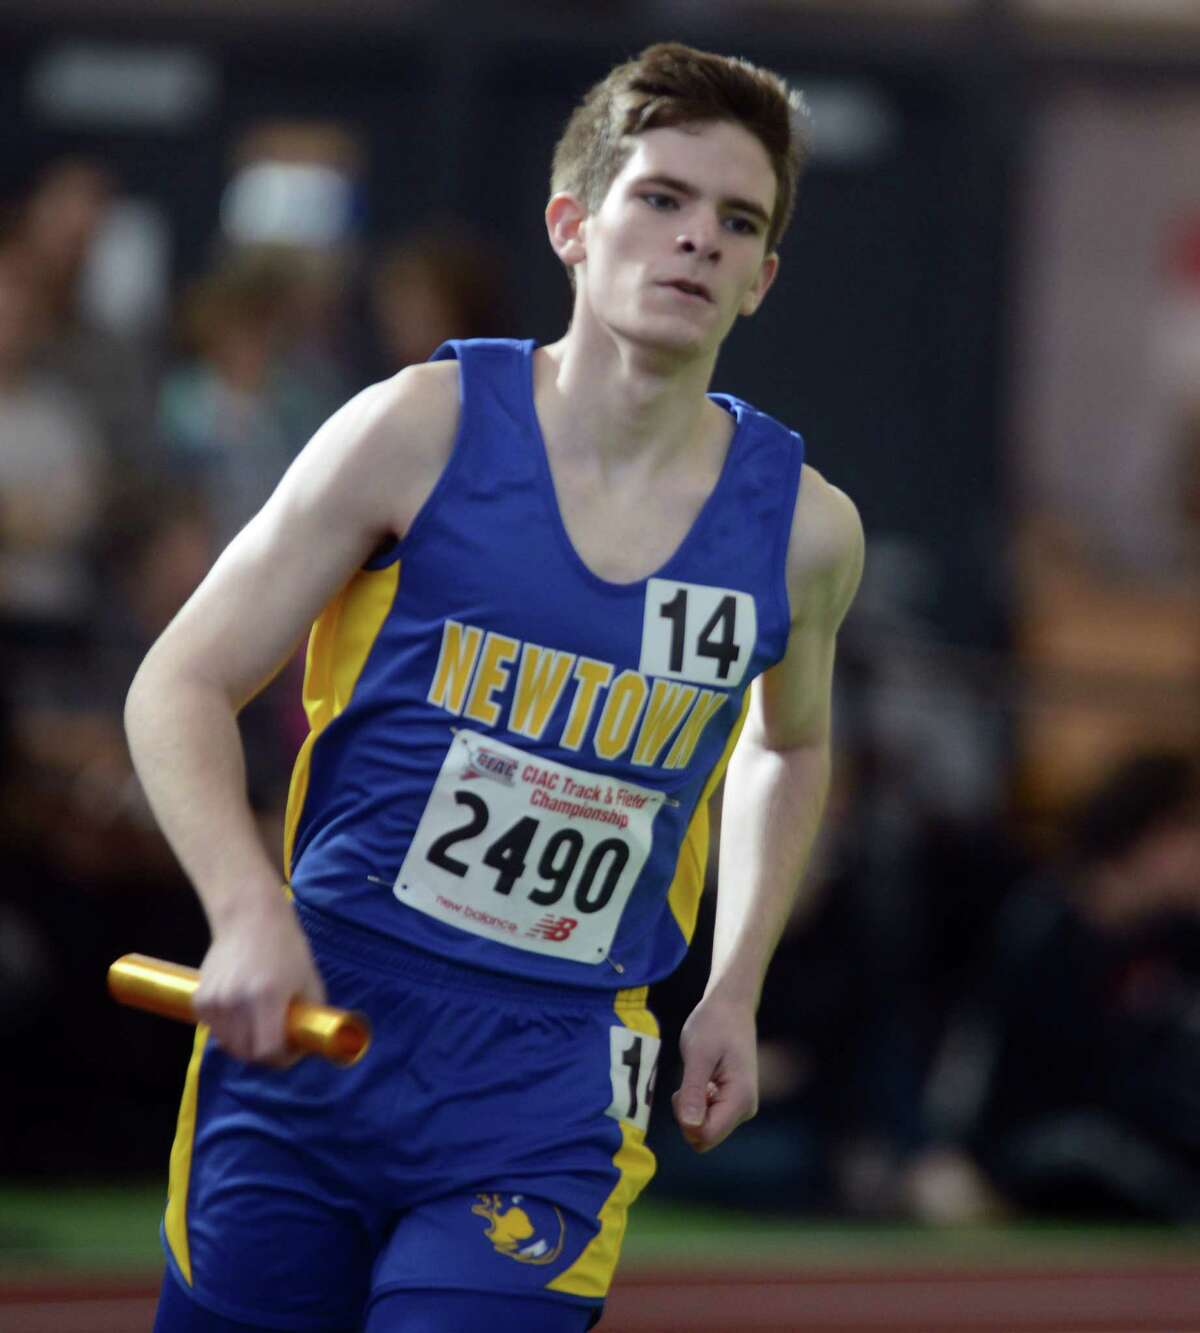 Newtown's Nick Swenson competes in the 4x800 meter relay Saturday, Feb. 8, 2014, during the CIAC Class LL Boys and Girls track championships at the Floyd Little Athletic Center in New Haven, Conn.